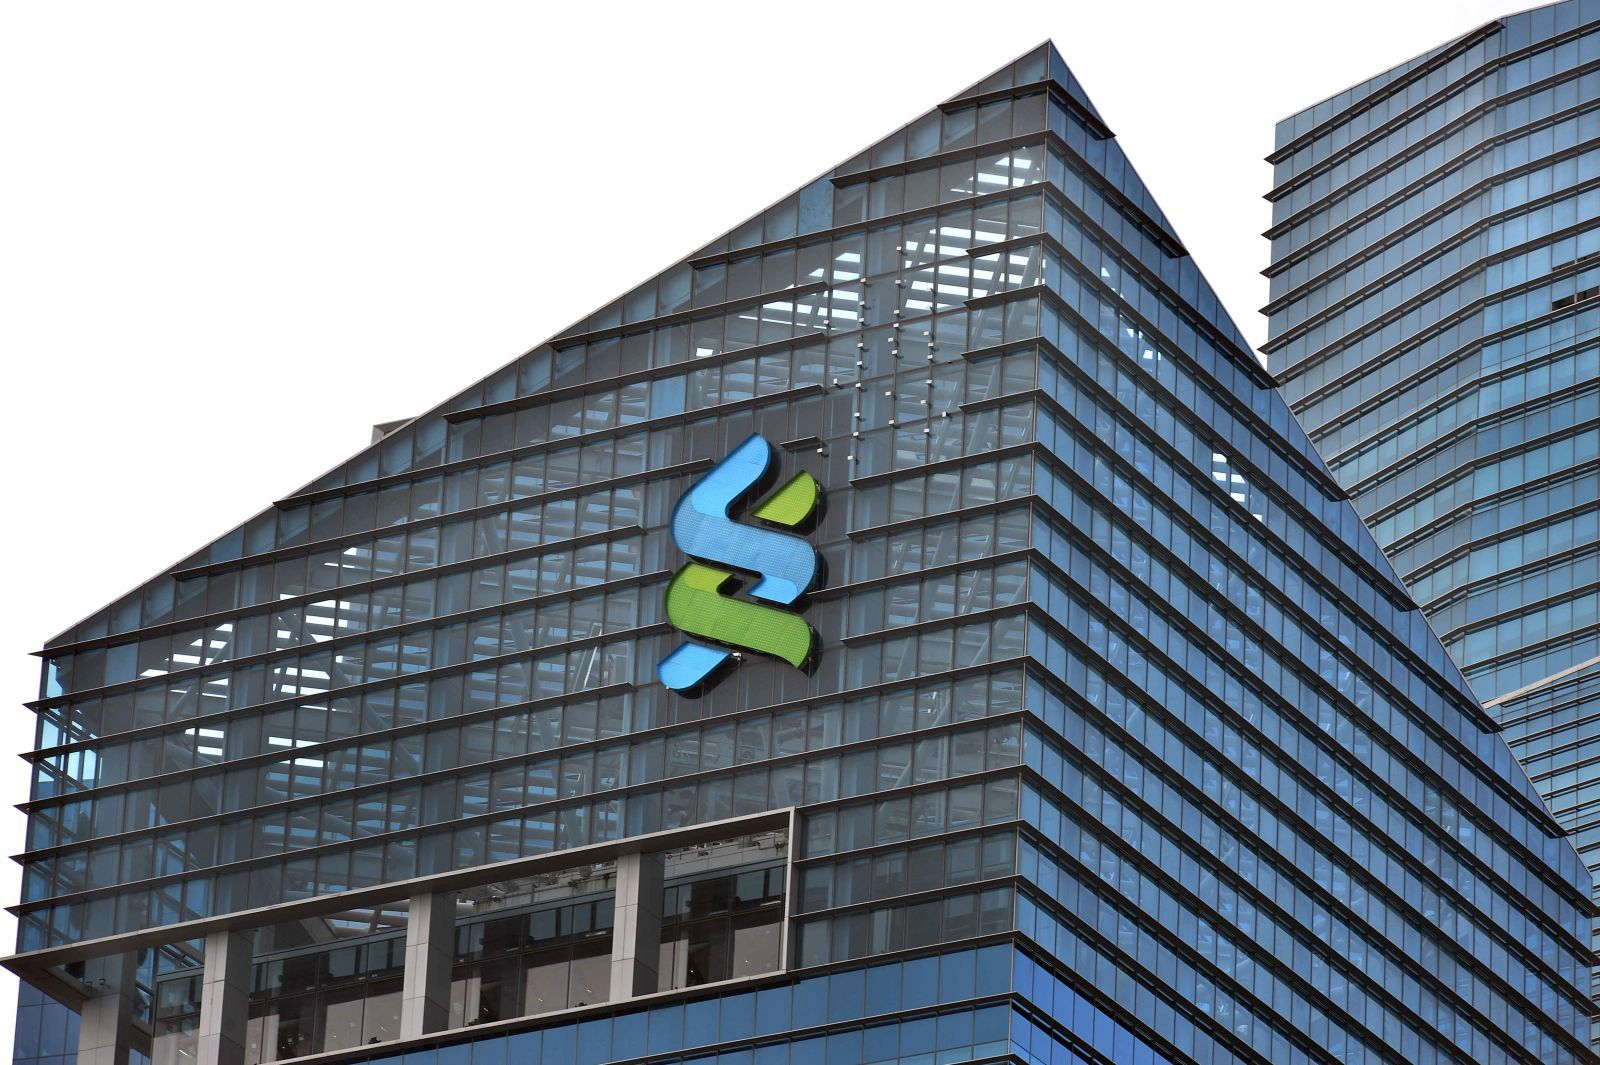 Standard Chartered celebrates 160 years in Singapore, Banking & Finance - THE BUSINESS TIMES